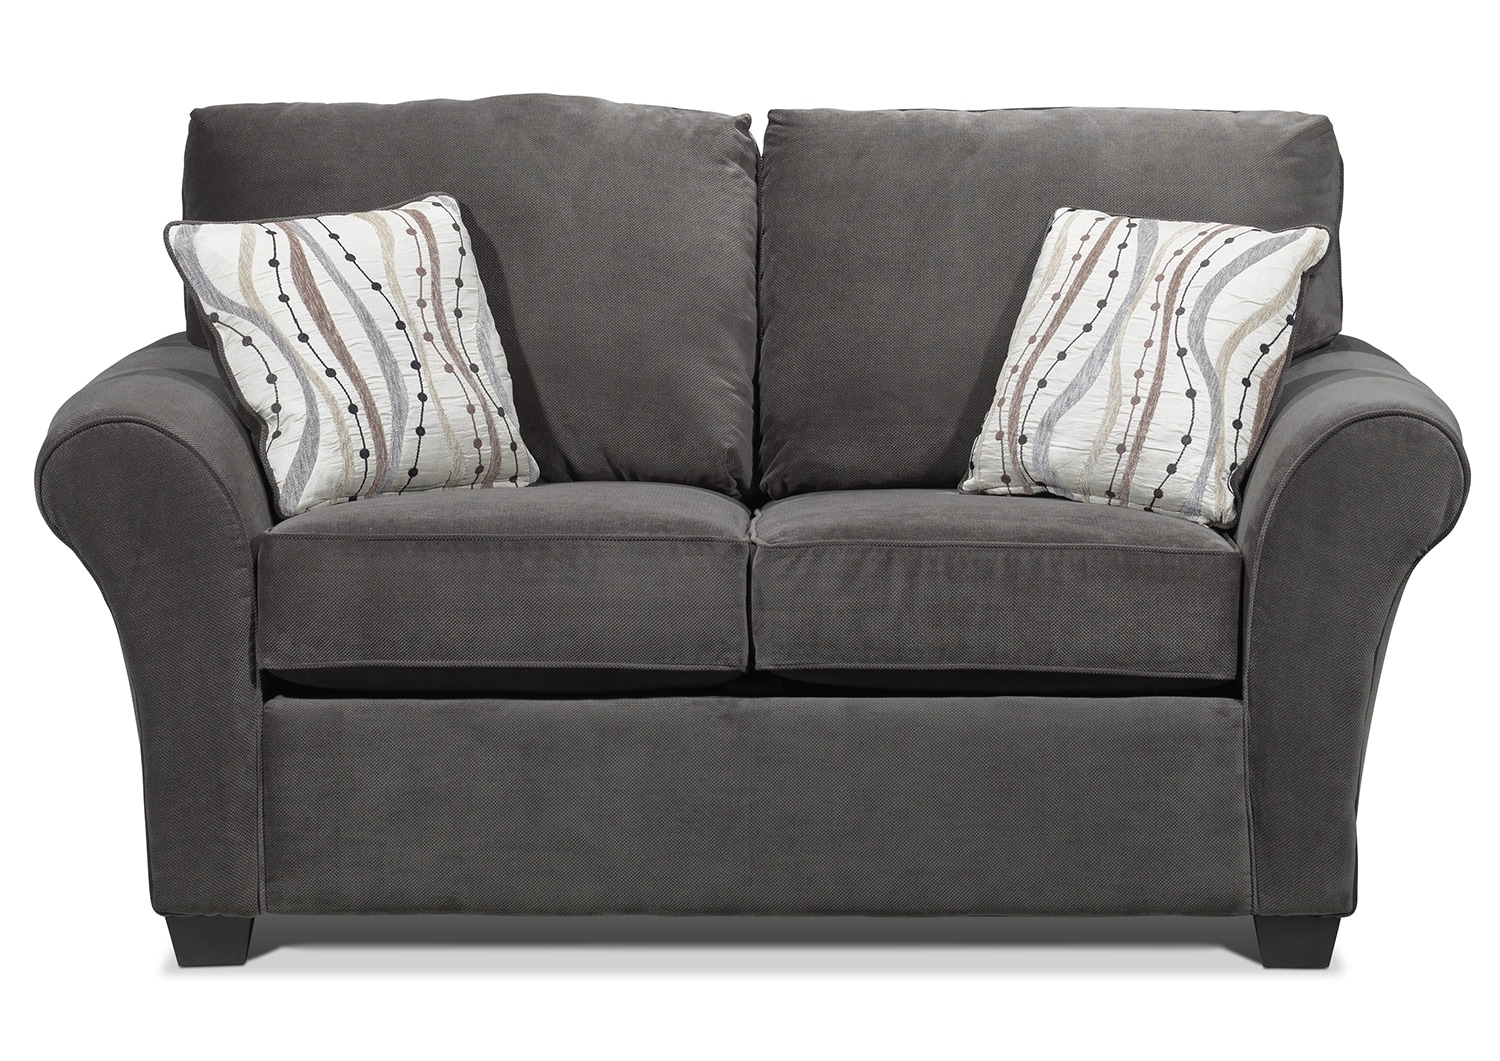 Living Room Furniture - Langley Loveseat - Charcoal